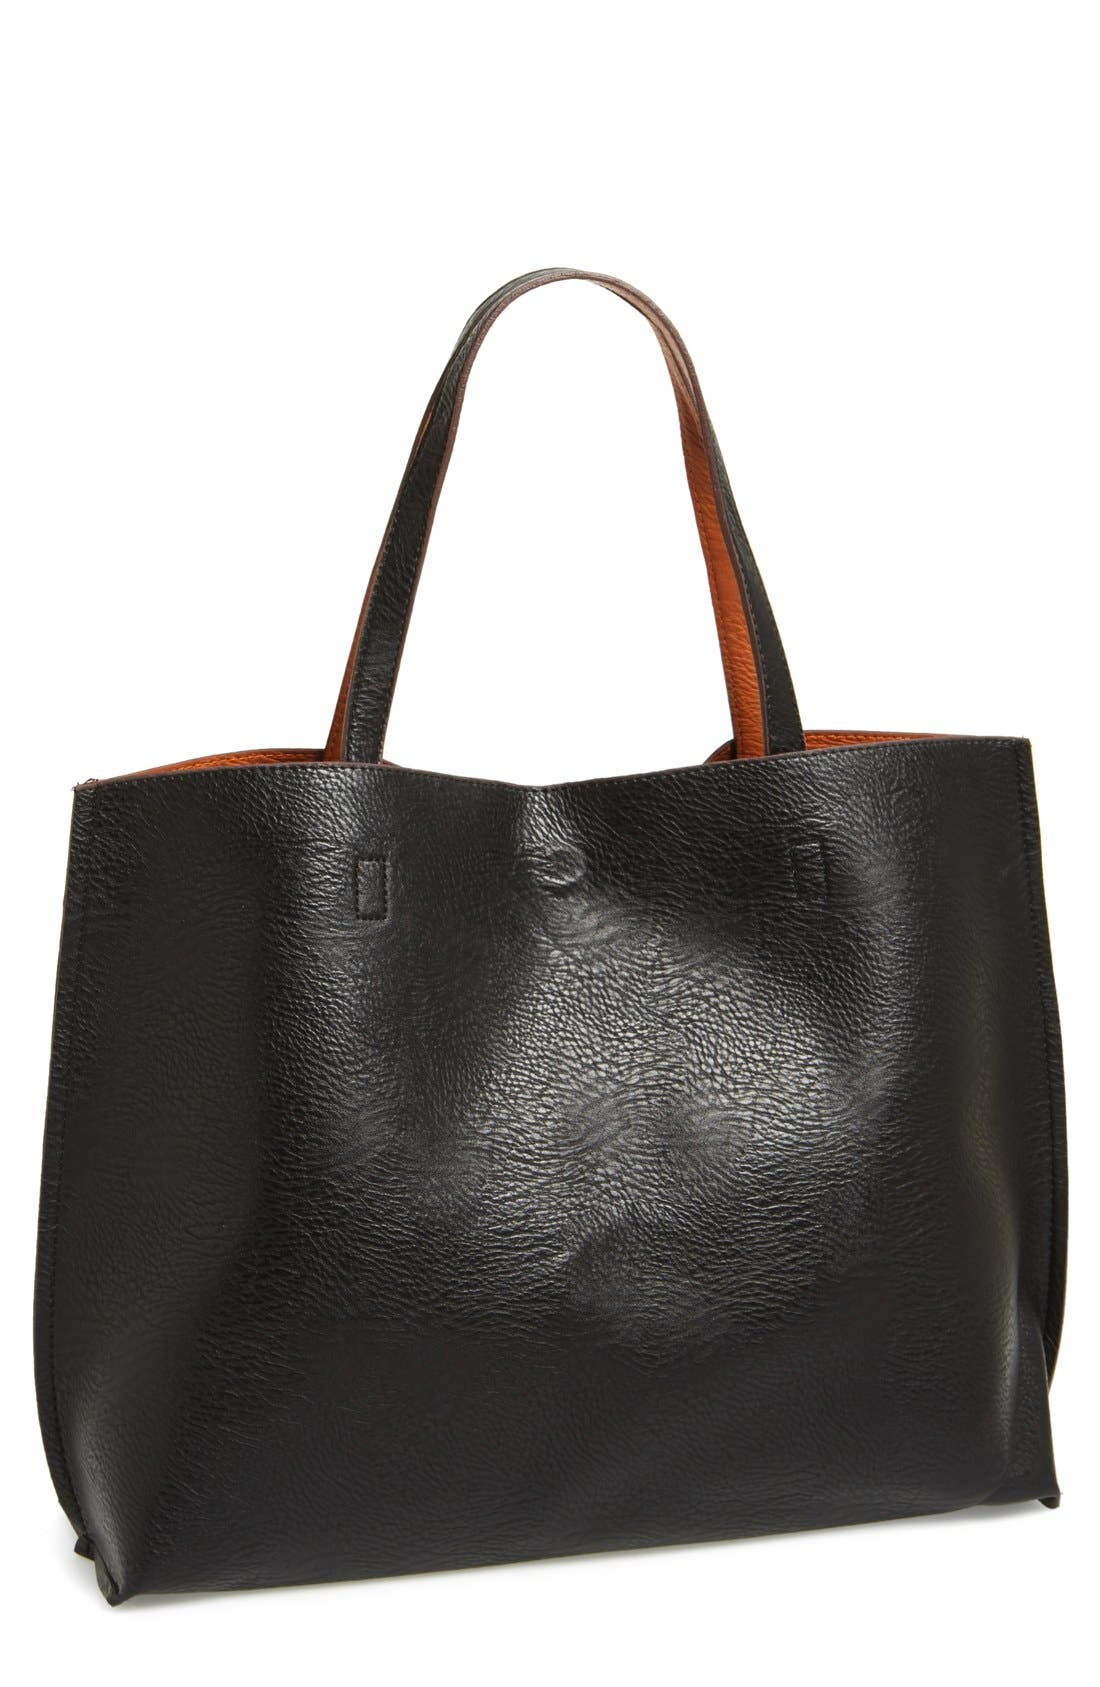 Alternate Image 3  - Street Level Reversible Faux Leather Tote & Wristlet